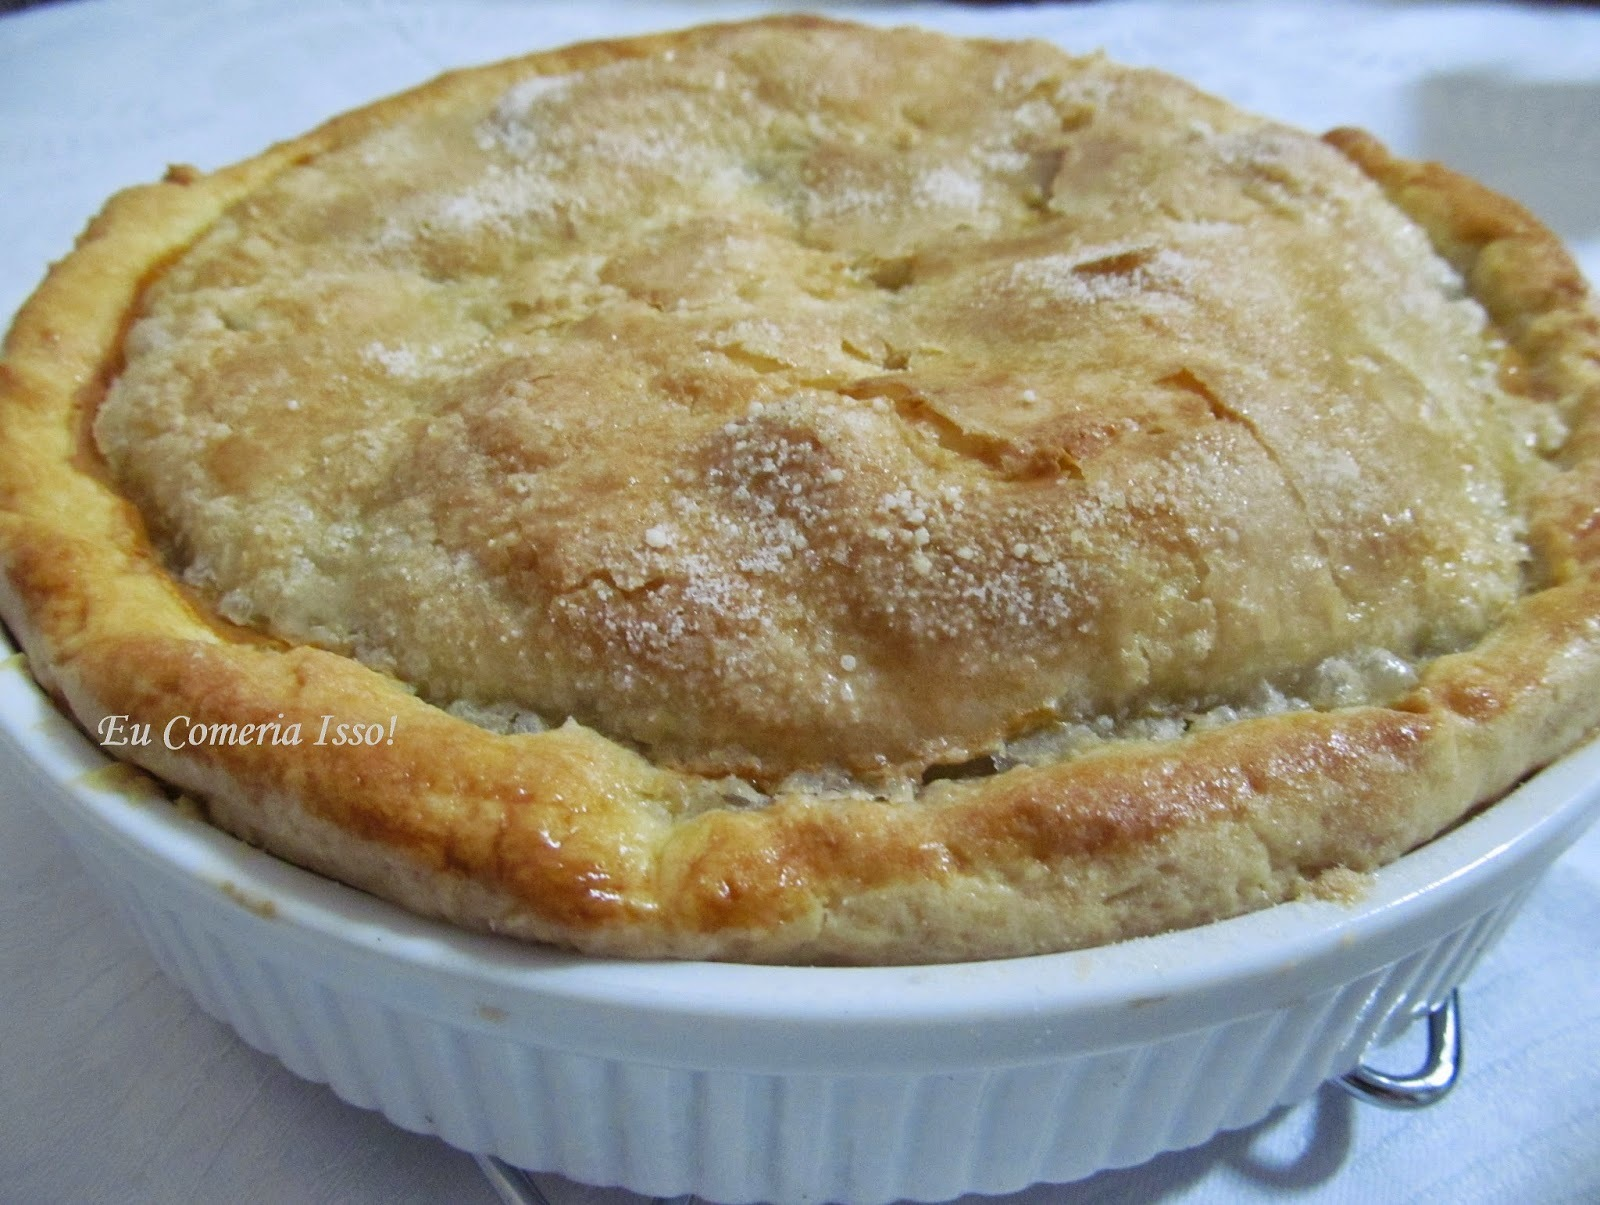 Apple Pie (Torta de Maçã)